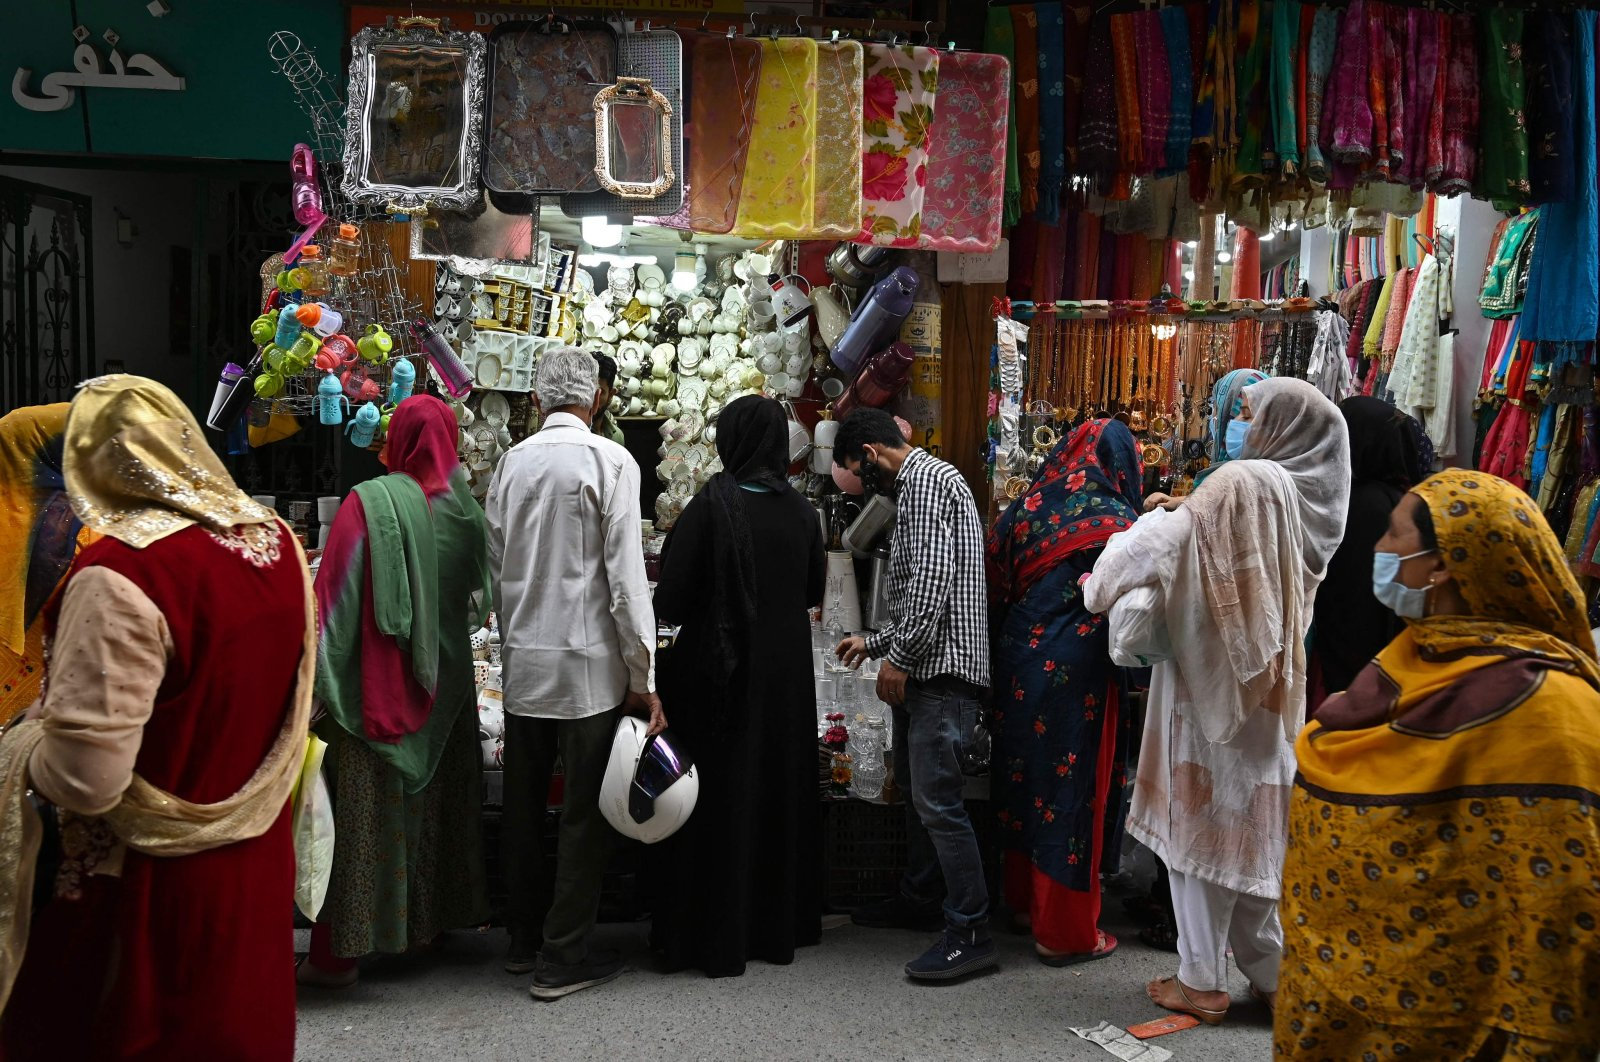 People shop at a market following a partial relaxation in the lockdown imposed to curb the spread of the coronavirus in Srinagar, Indian-administrated Kashmir, June 3, 2021. (AFP Photo)